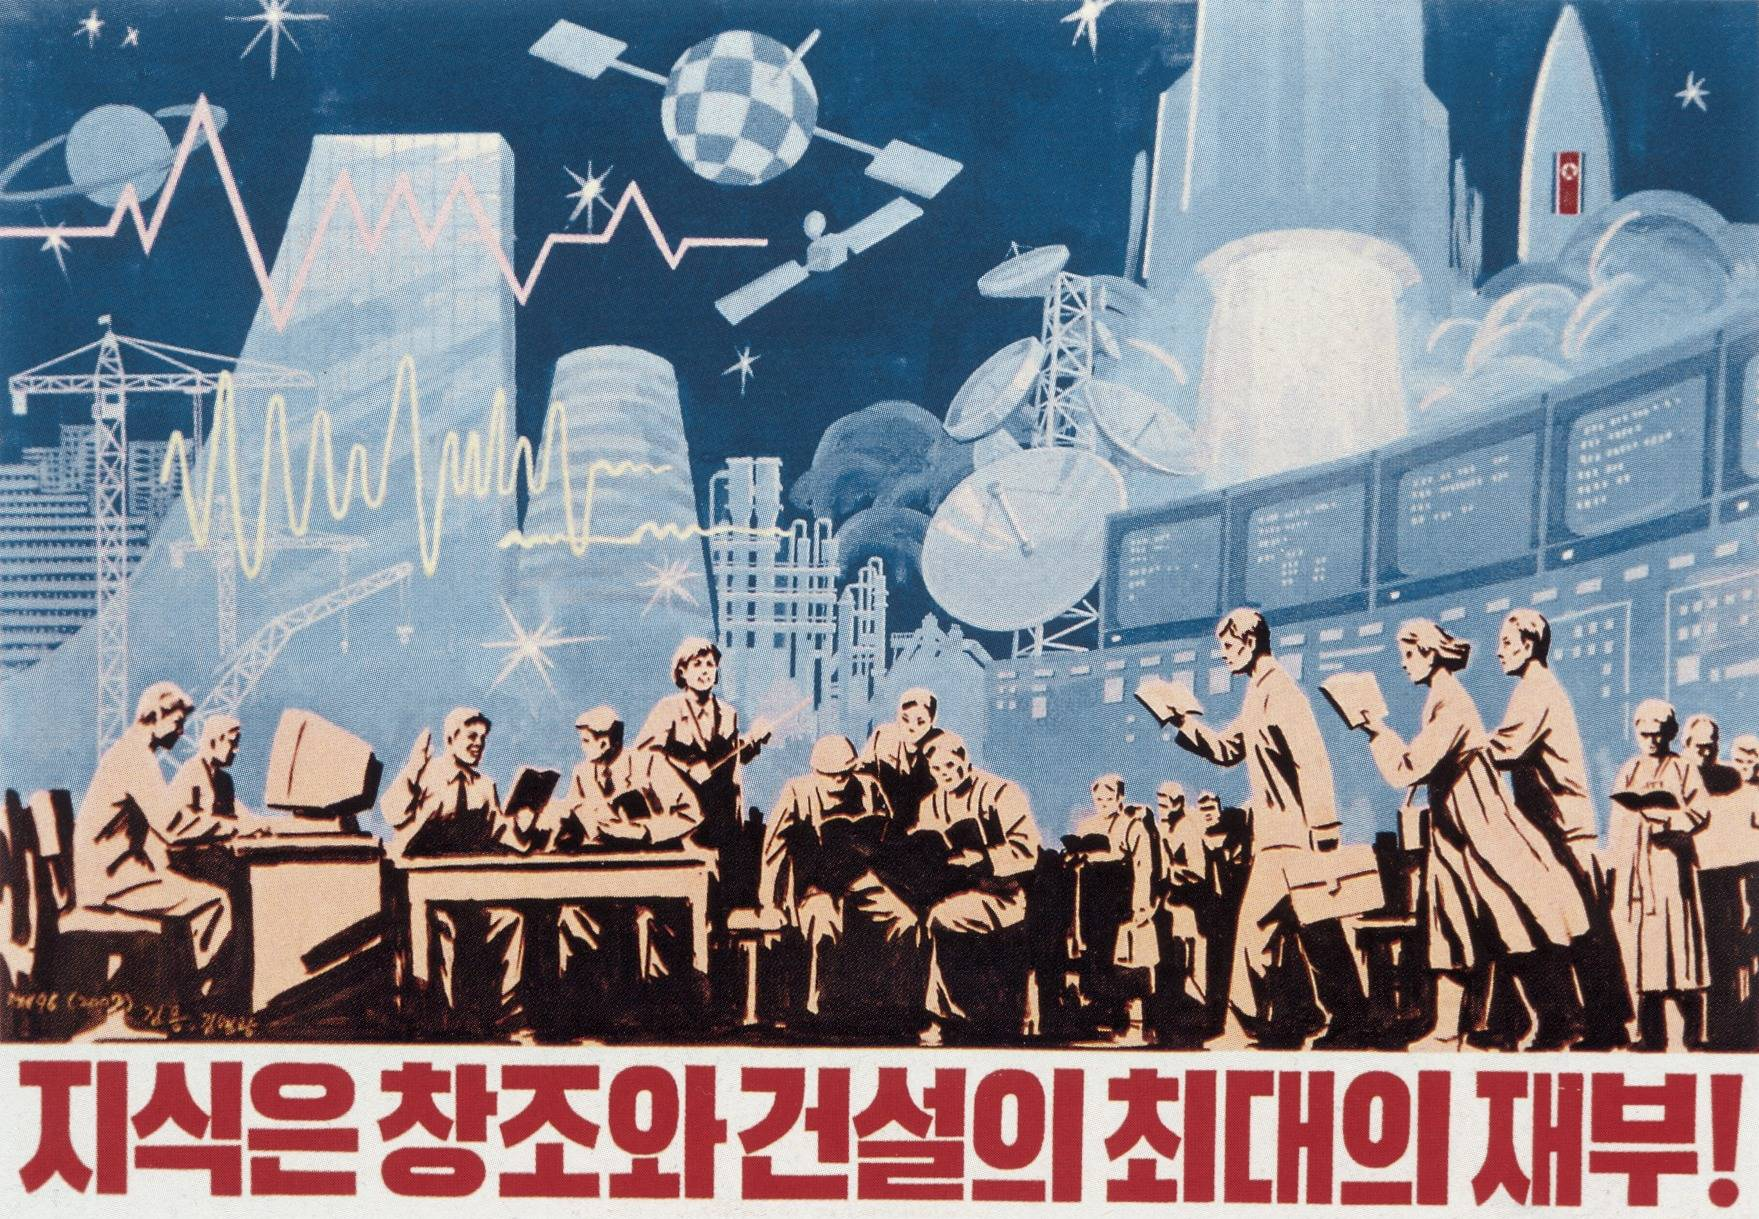 North Korean College Recruitment Poster